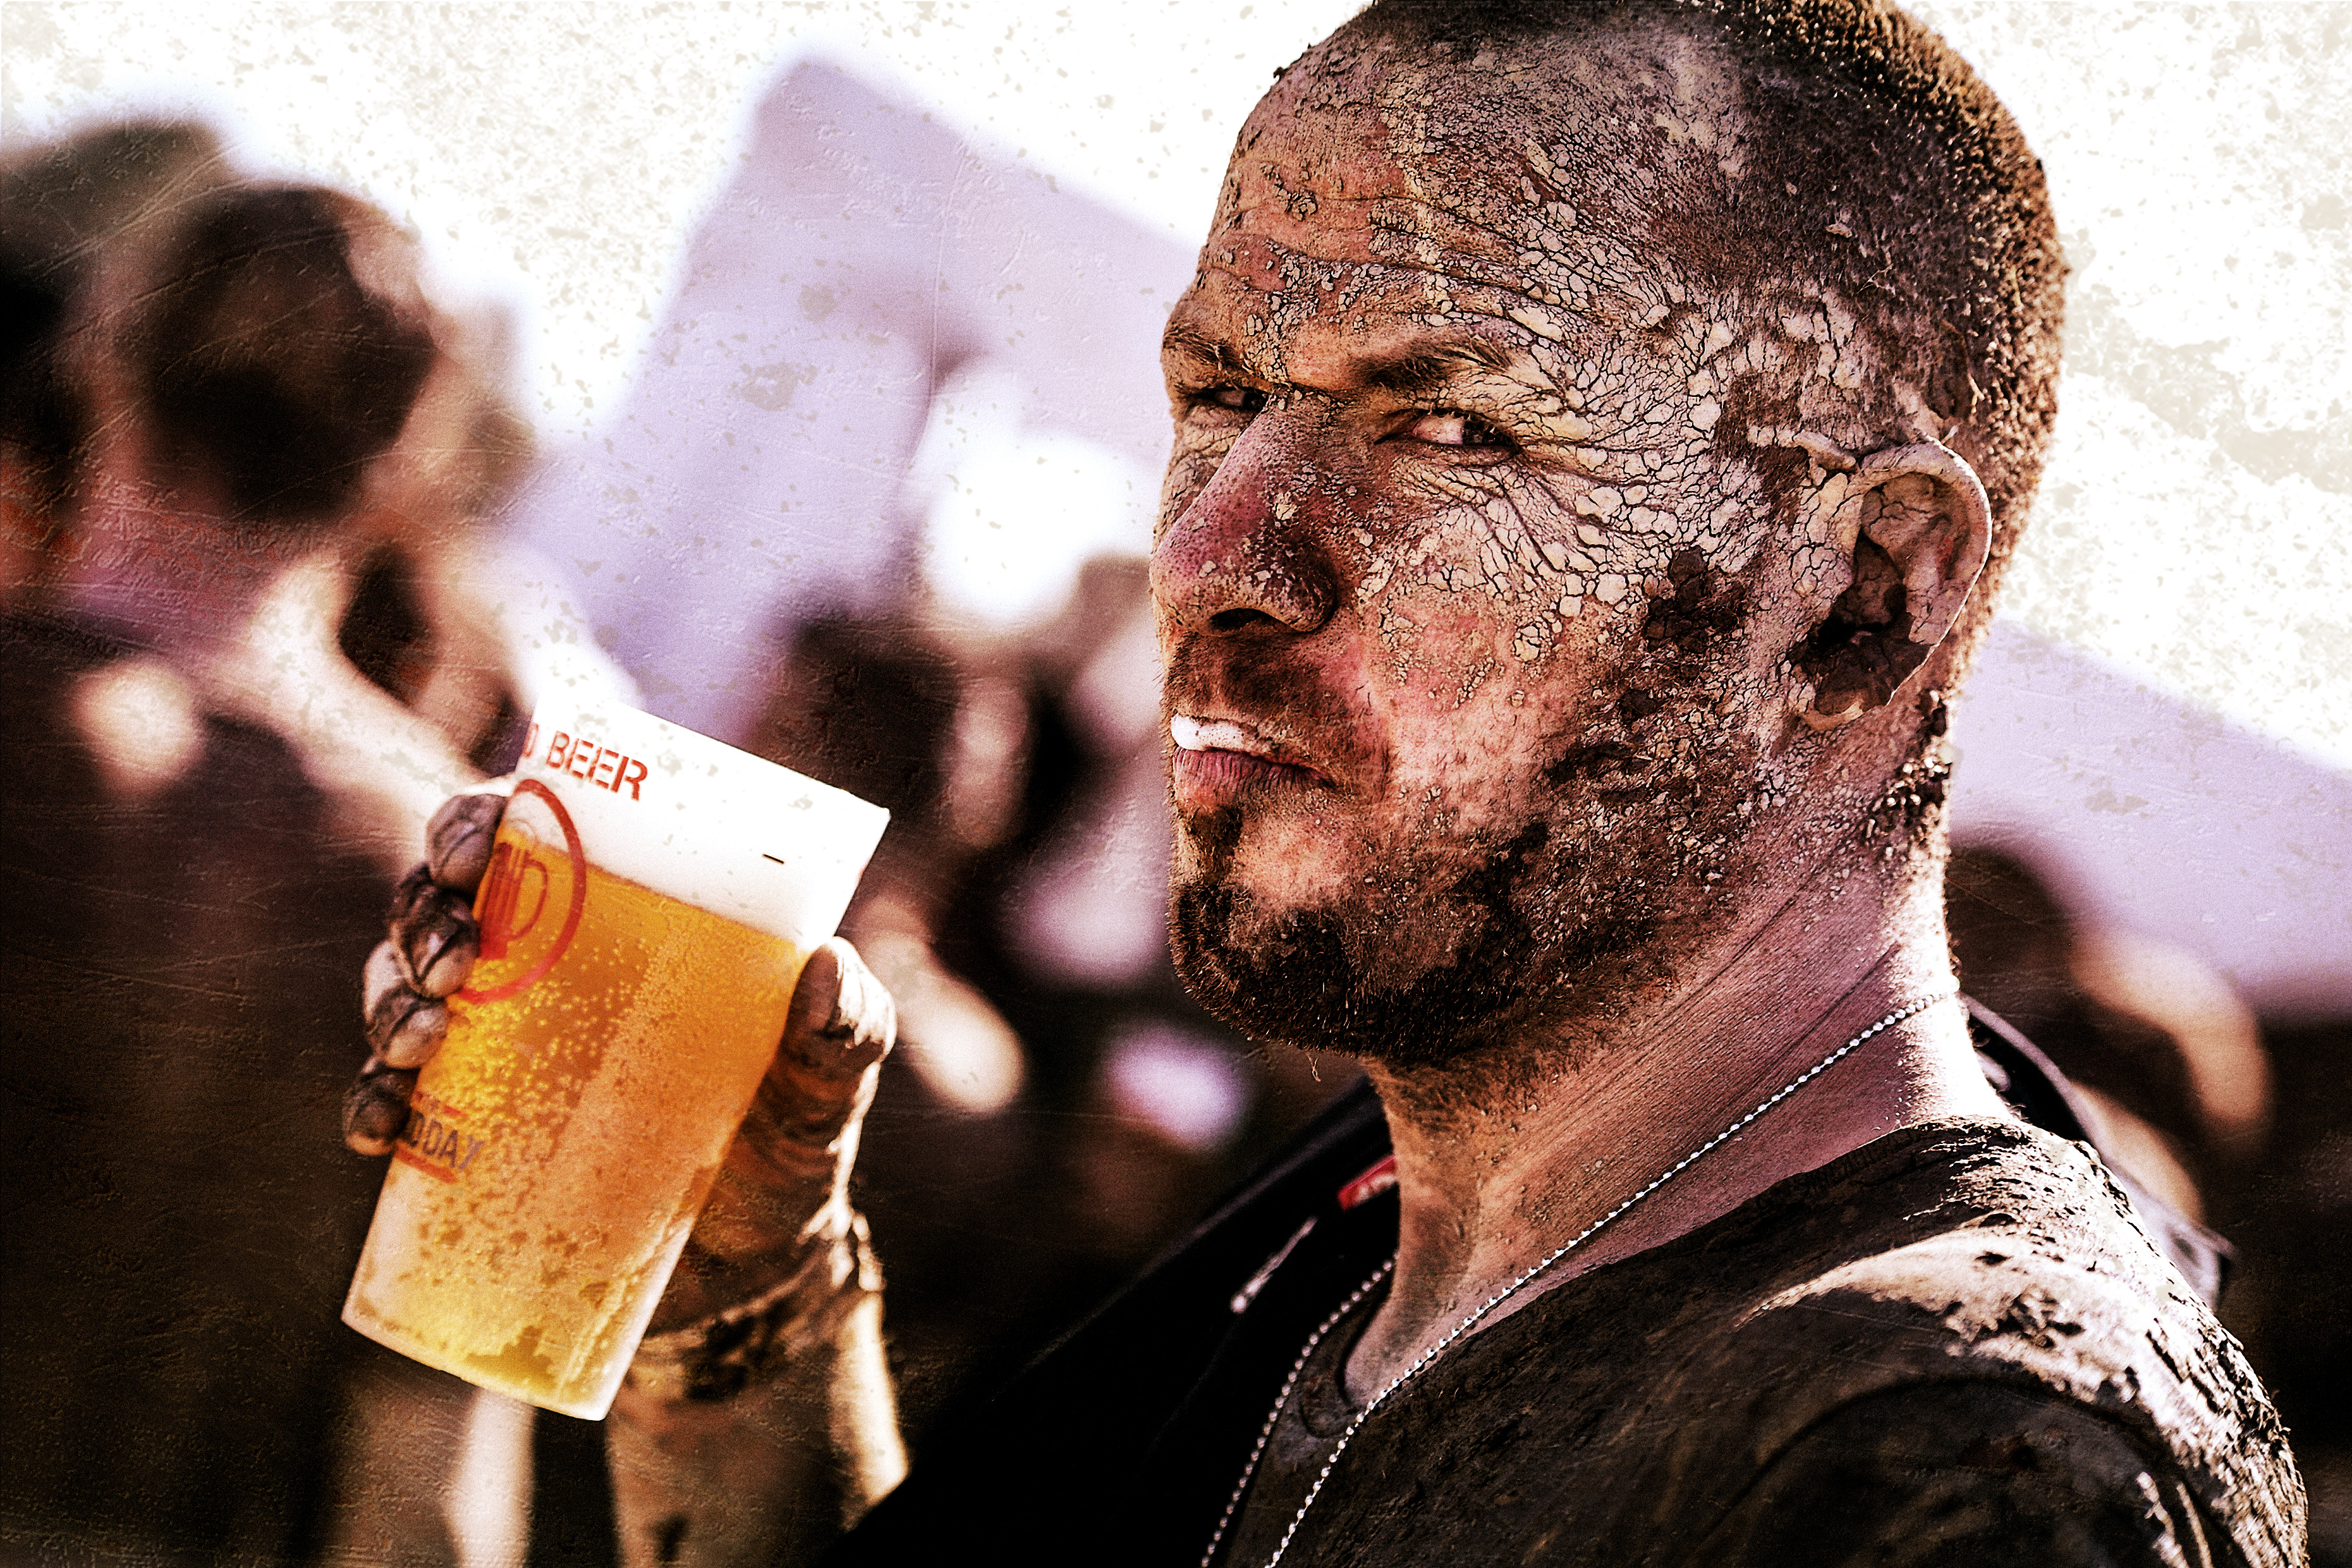 Un Mud Guy con su Mud Beer